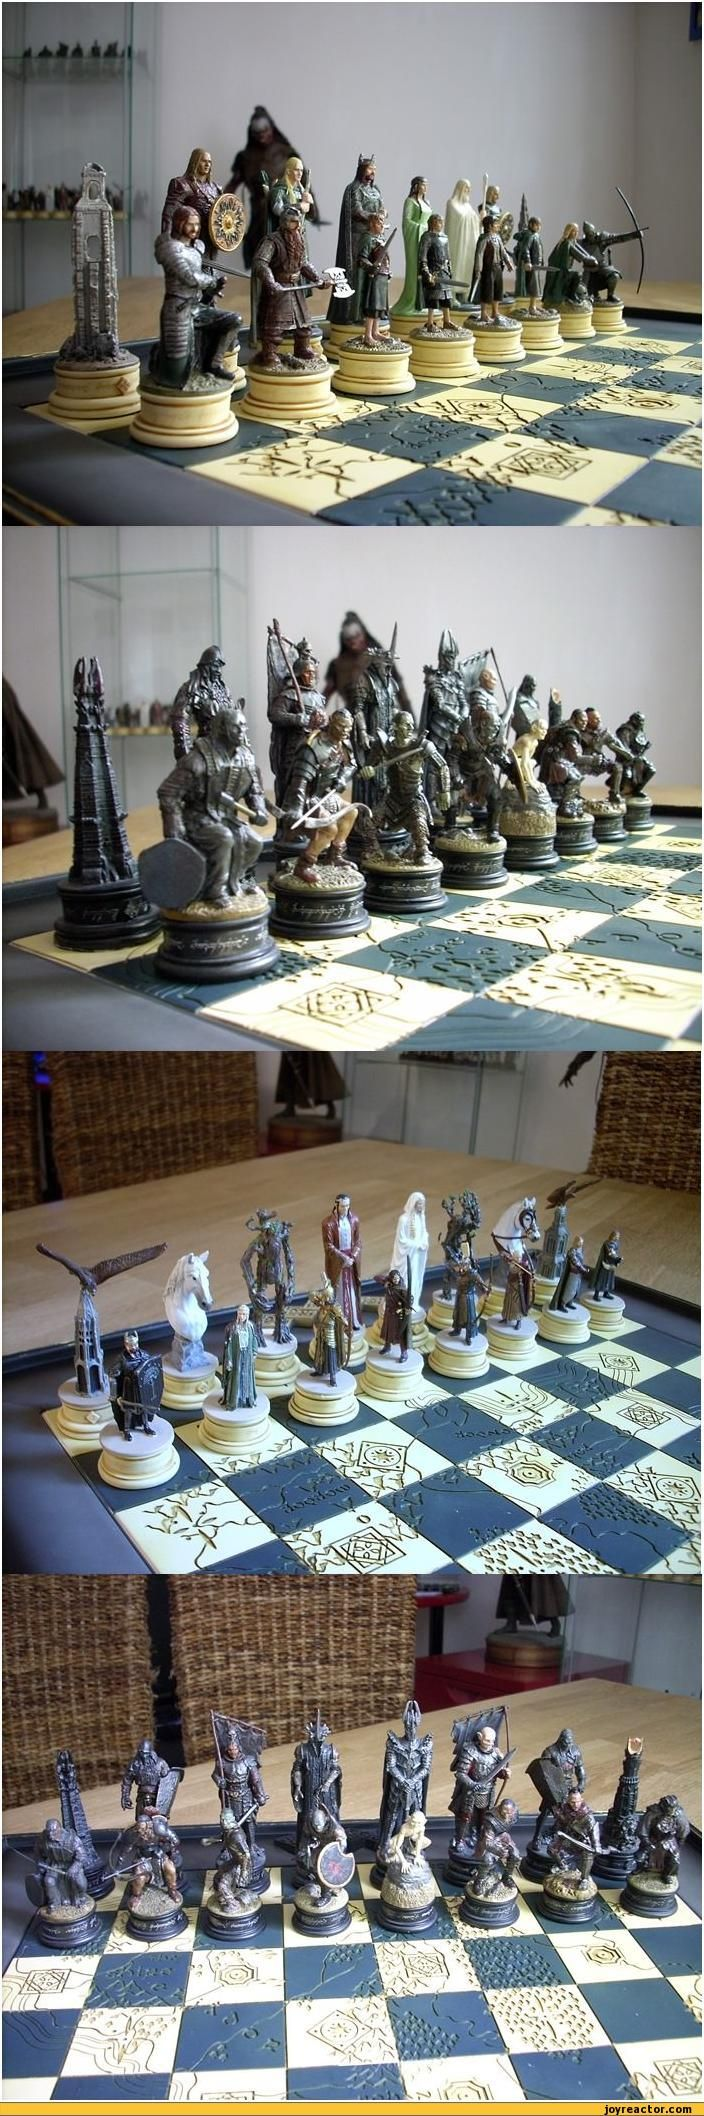 267 best chess images on pinterest chess sets chess pieces and